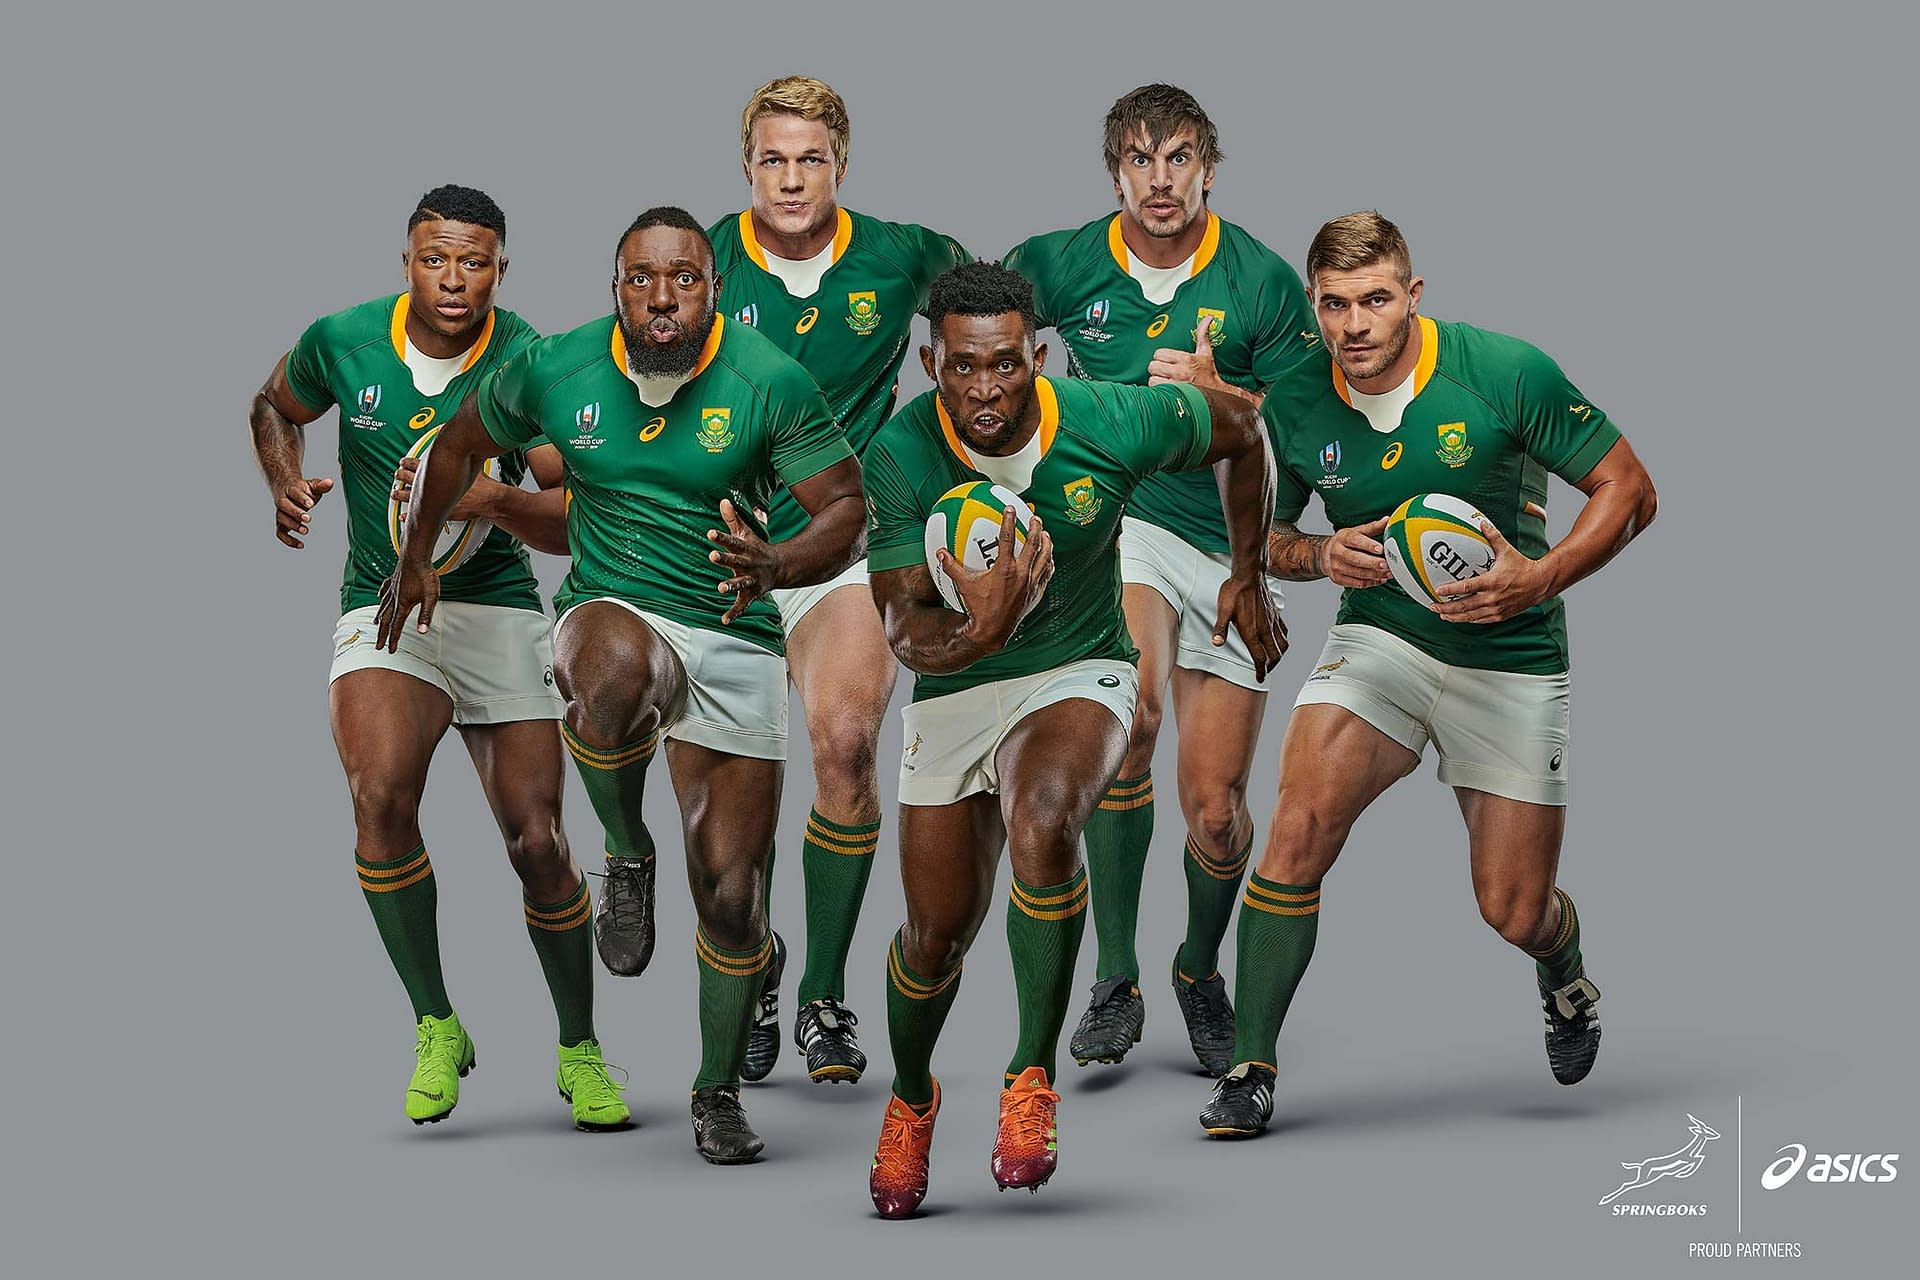 world cup rugby champions south Africa photographed in studio for new asics print campaign